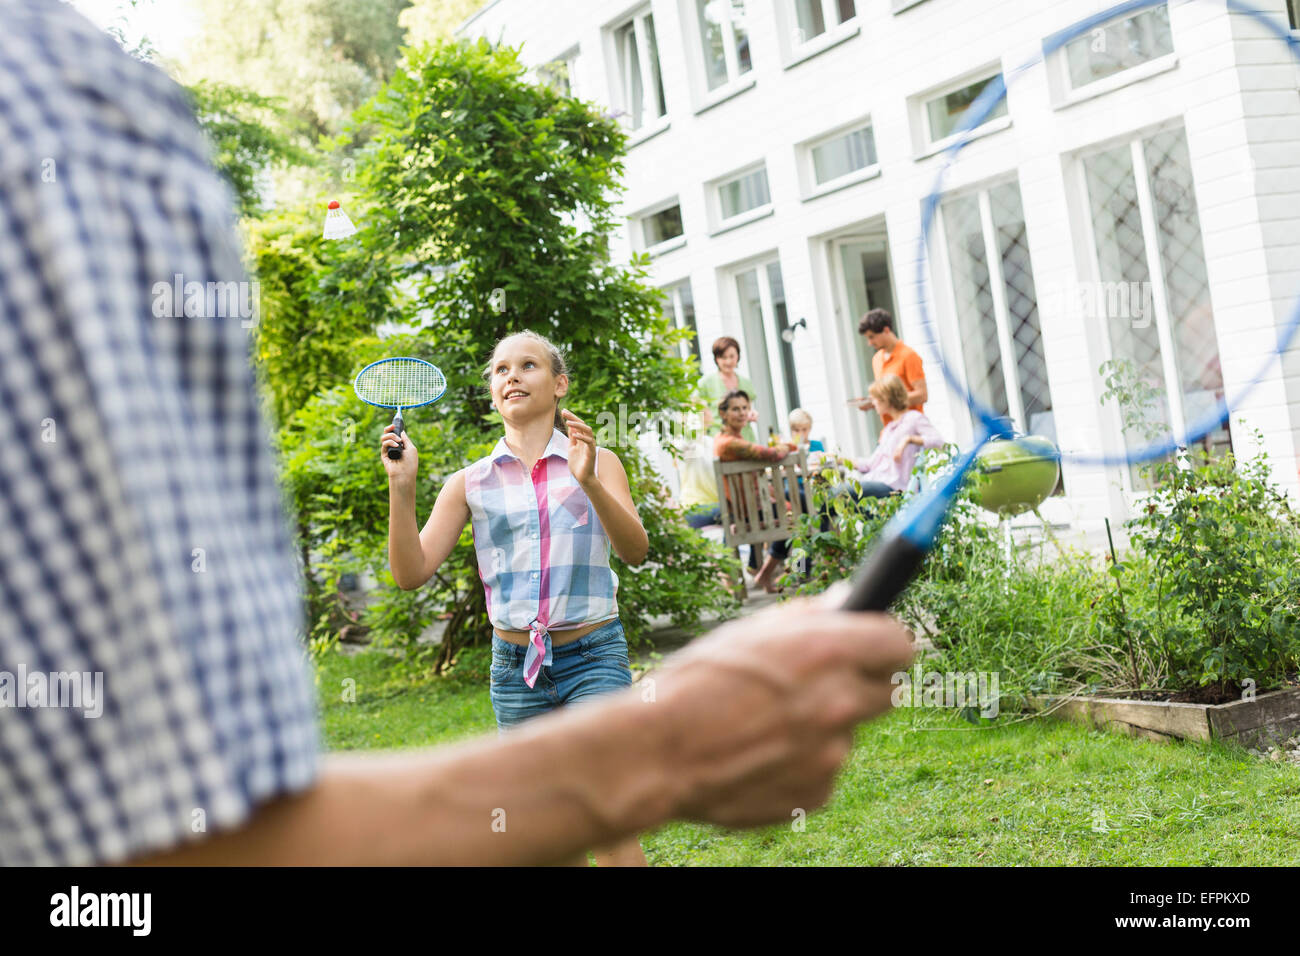 Girl and male relation playing badminton while family look on - Stock Image